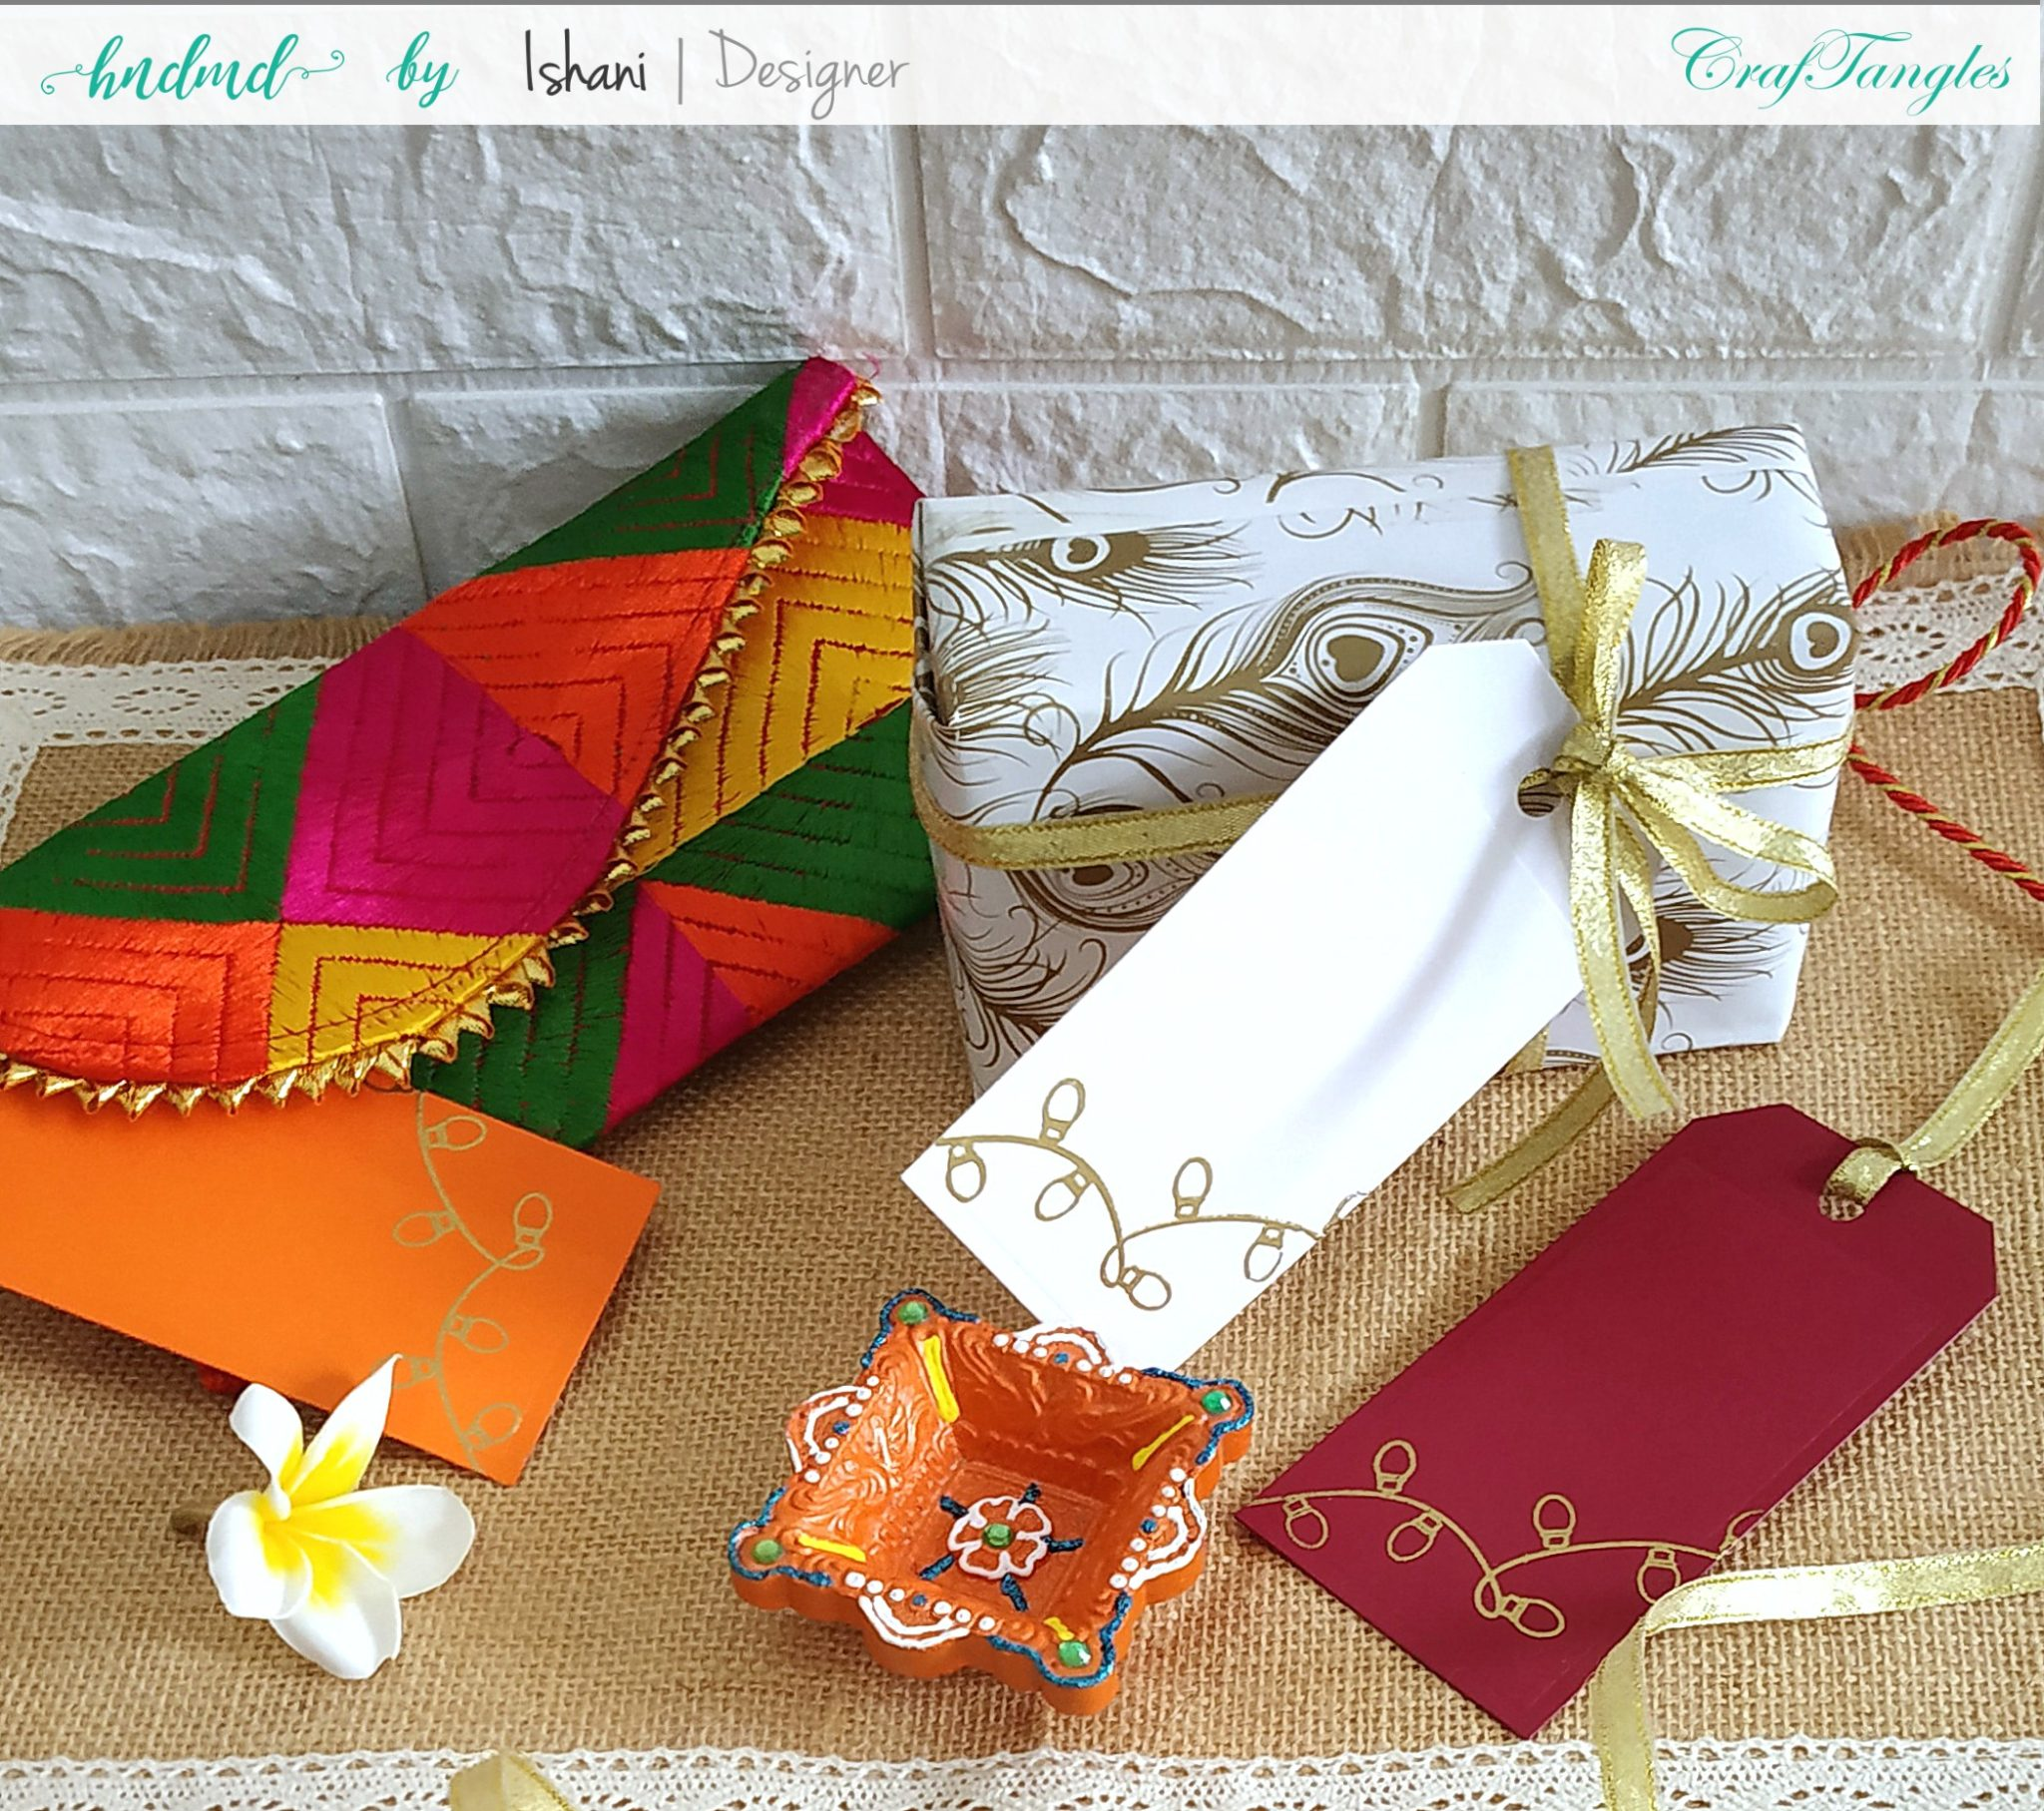 Diwali Crafts - Easy Ideas to Mass Produce 8